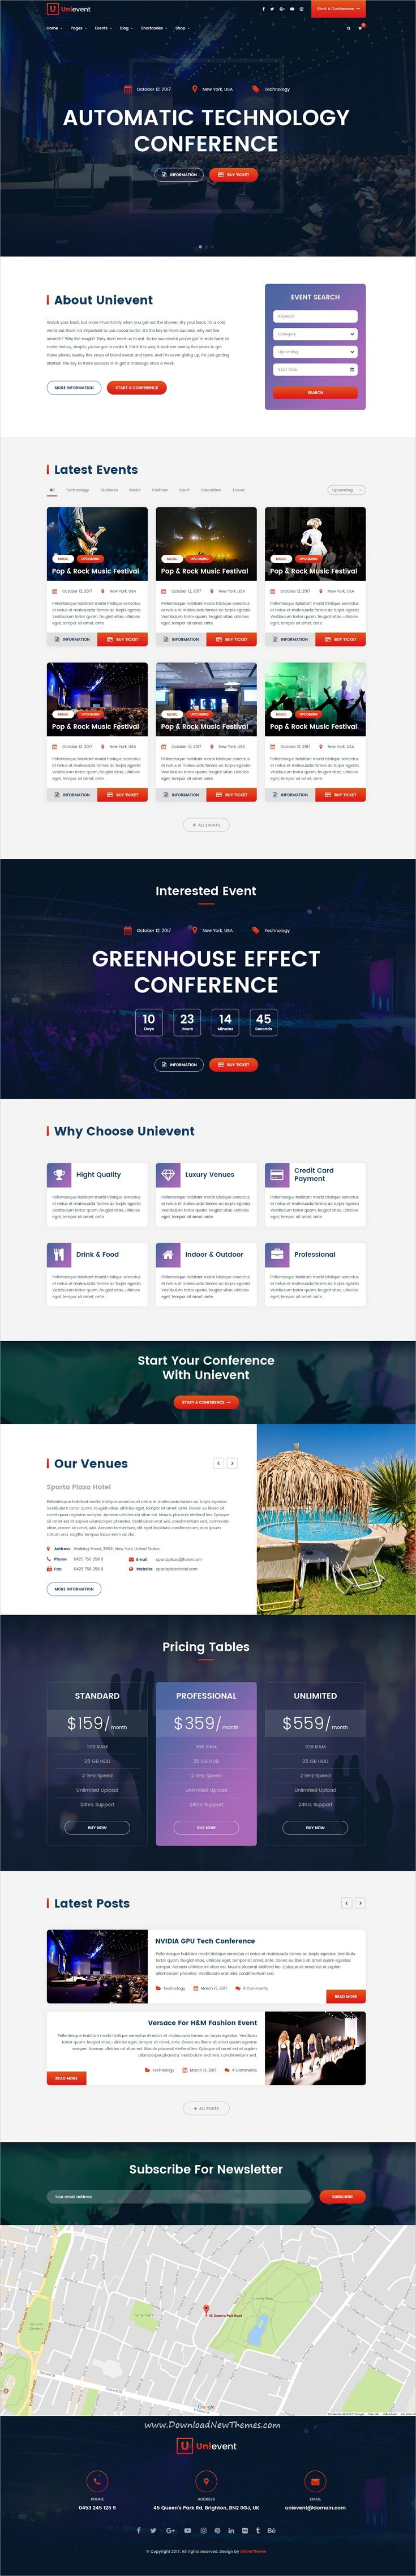 UniEvent is clean and modern design 5in1 PSD template for stunning #event and #conference website with 5 homepage layouts and 33 layered PSD pages  click on the image to download.